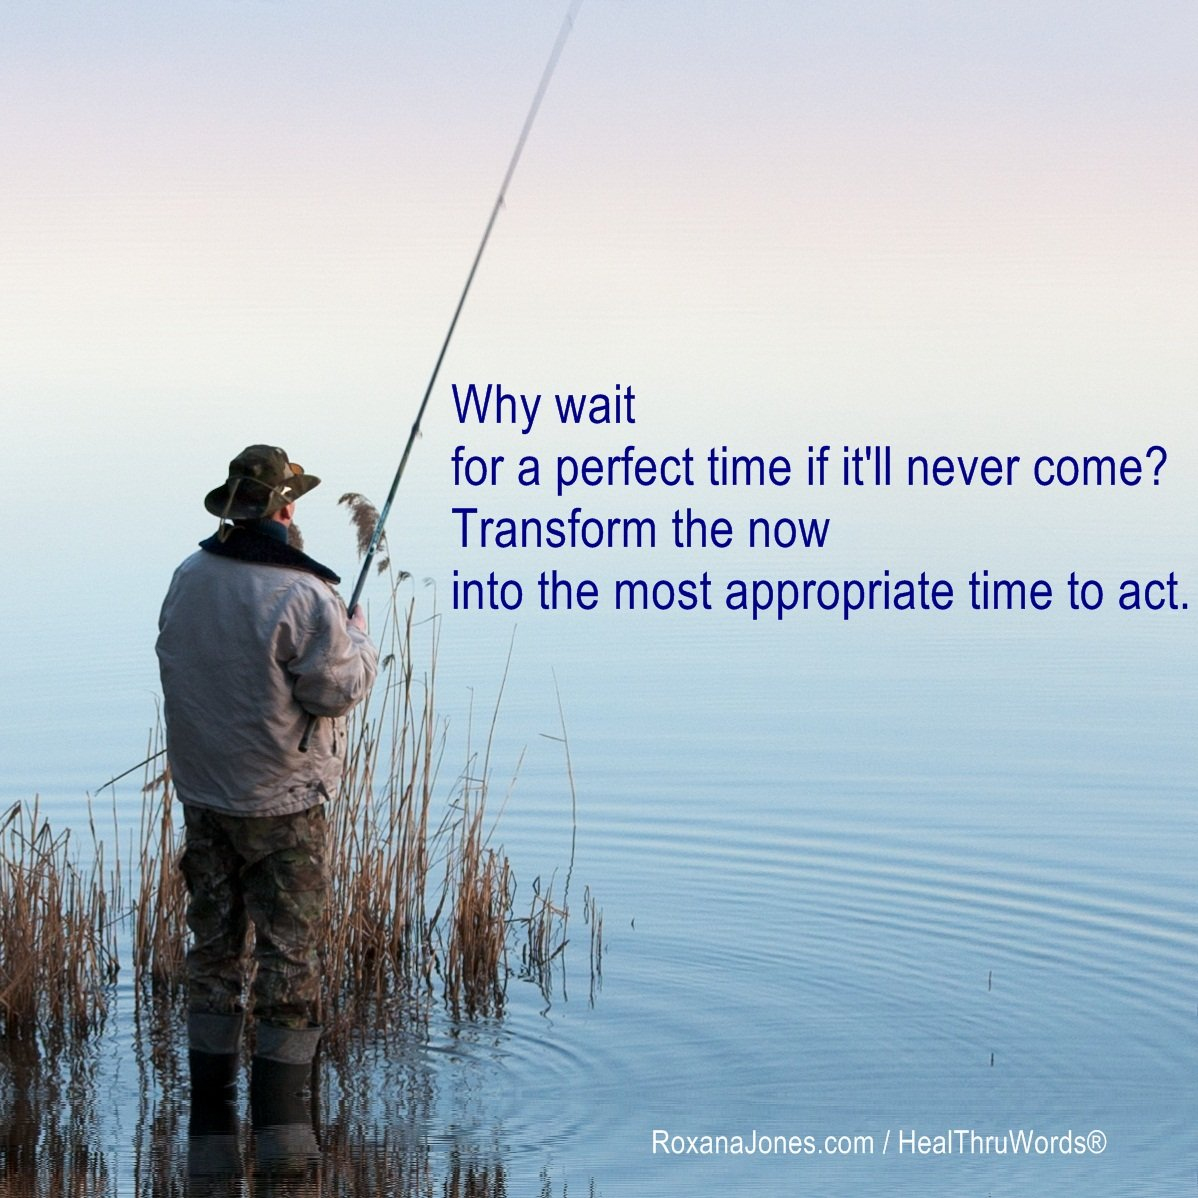 Inspirational Image: Waiting in Vain